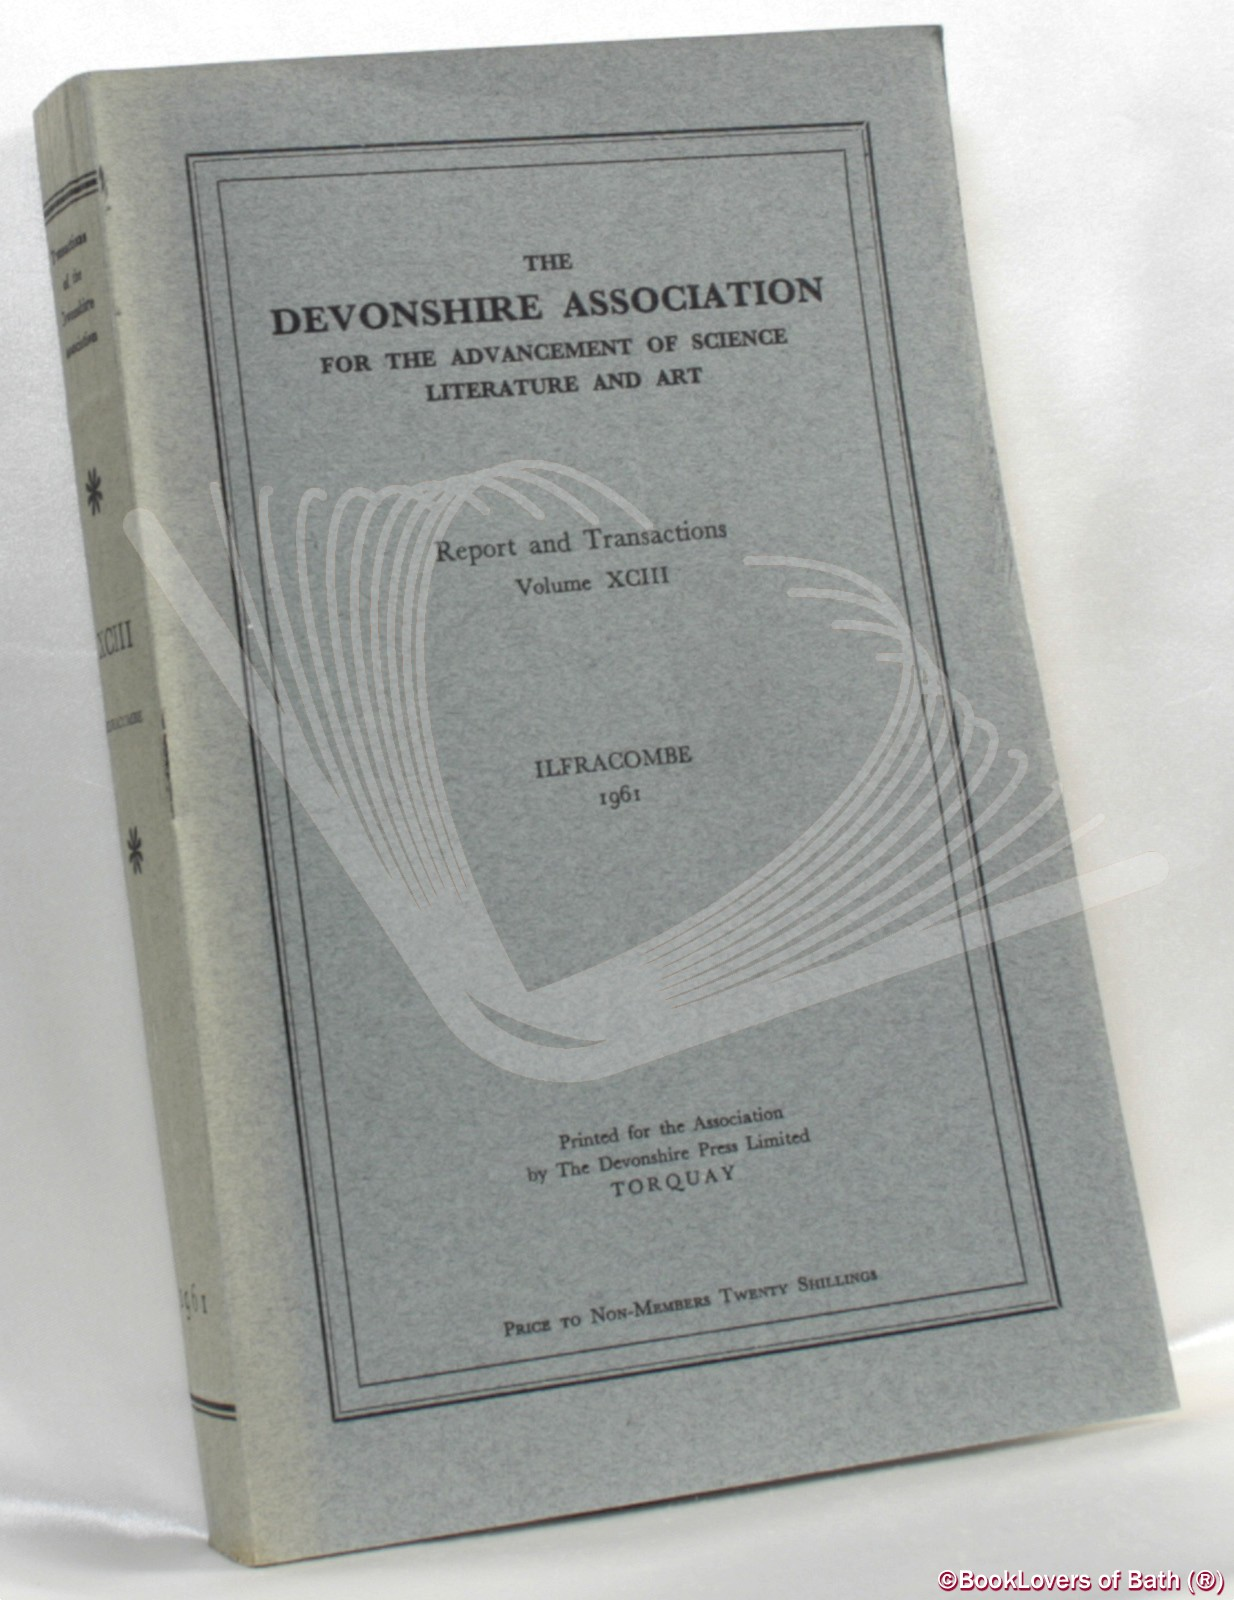 The Devonshire Association for the Advancement of Science, Literature and Art: Reports & Transactions Volume XCIII Ilfracombe 1961 - Anon.